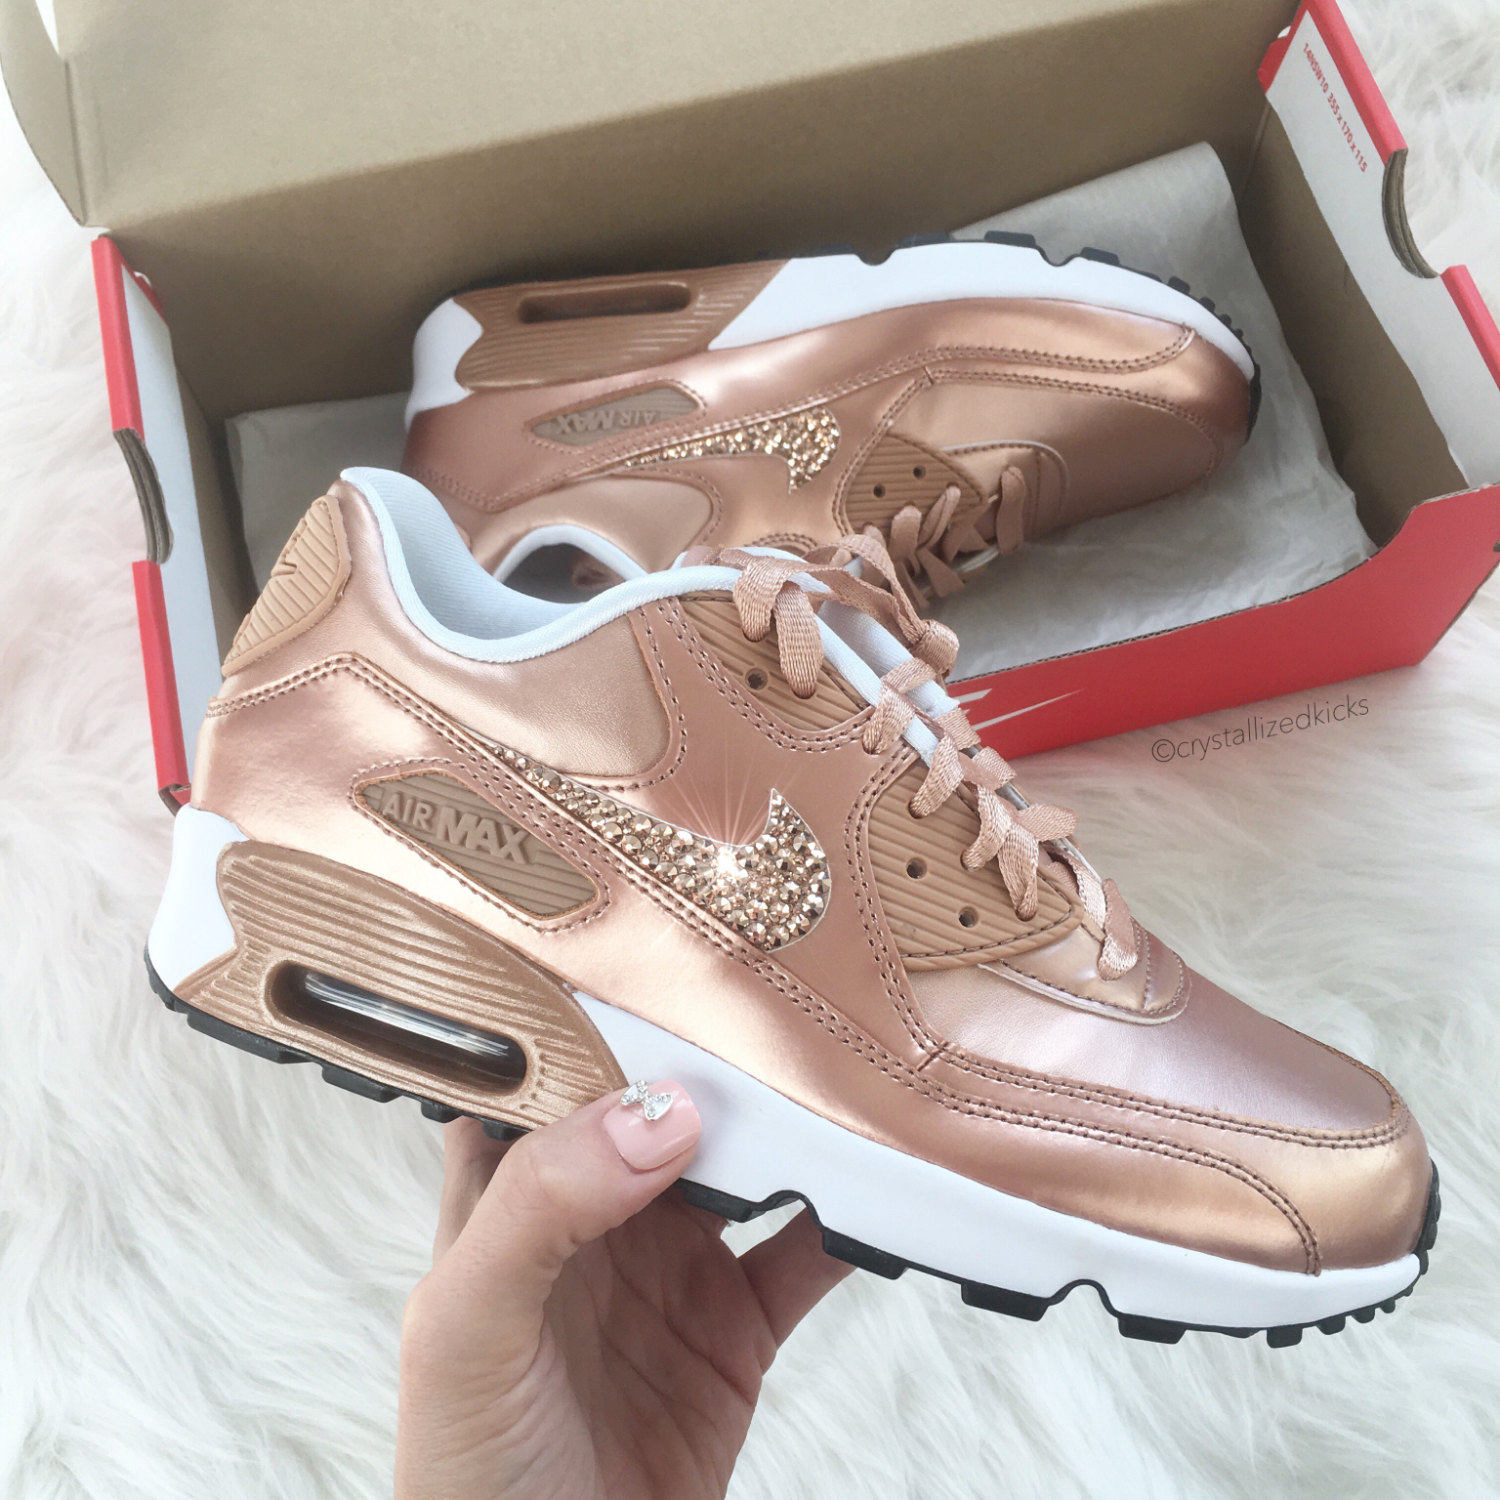 la moitié 09cd0 5c63d Nike Air Max 90 Silver Shoes Made with SWAROVSKI® Crystals - White/Metallic  Rose Gold